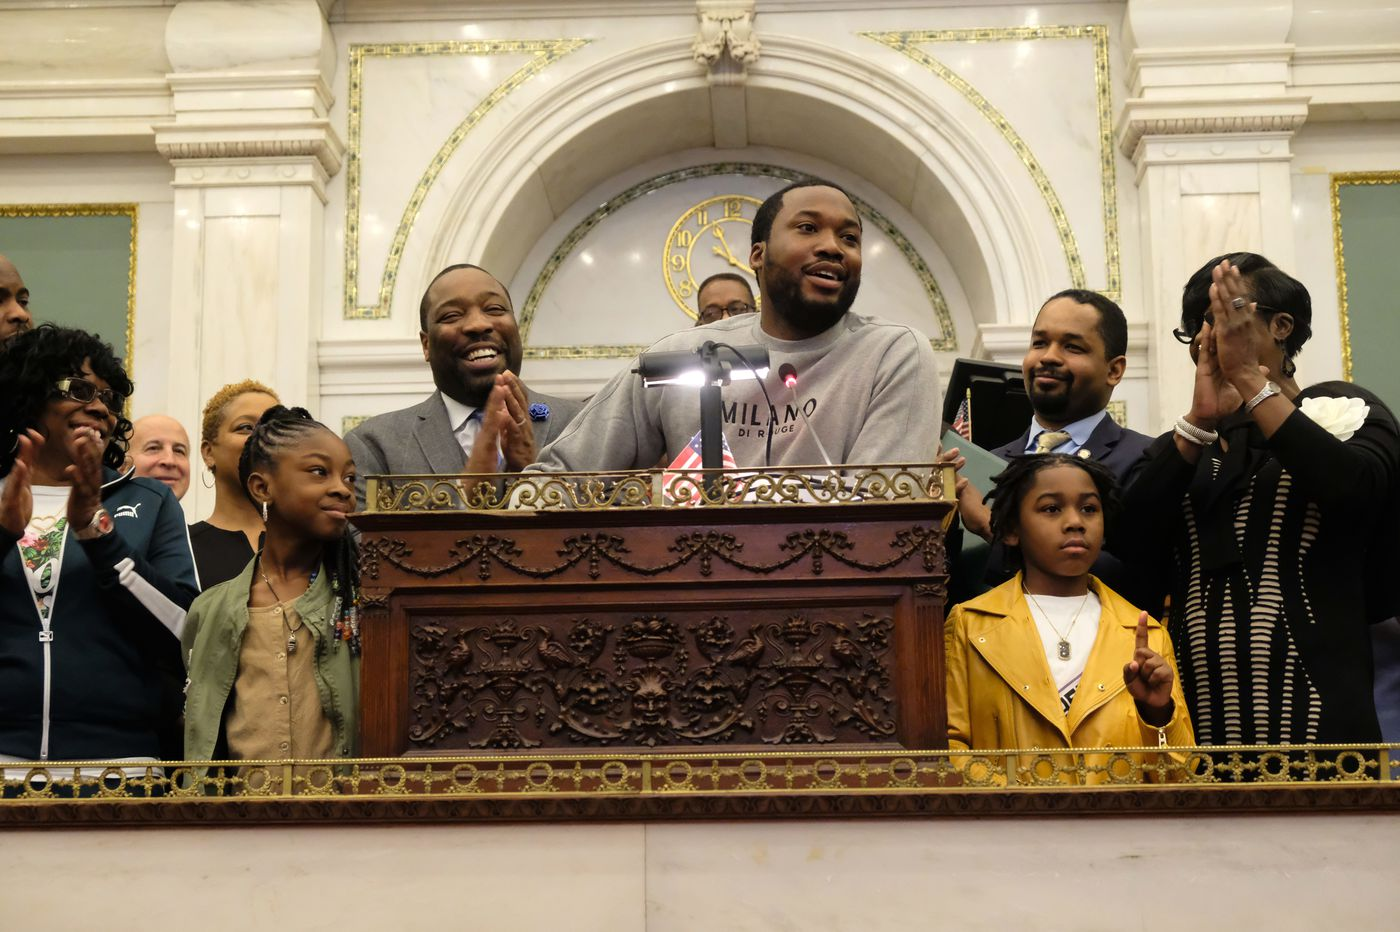 'Meek Mill Weekend' in Philly declared by City Council